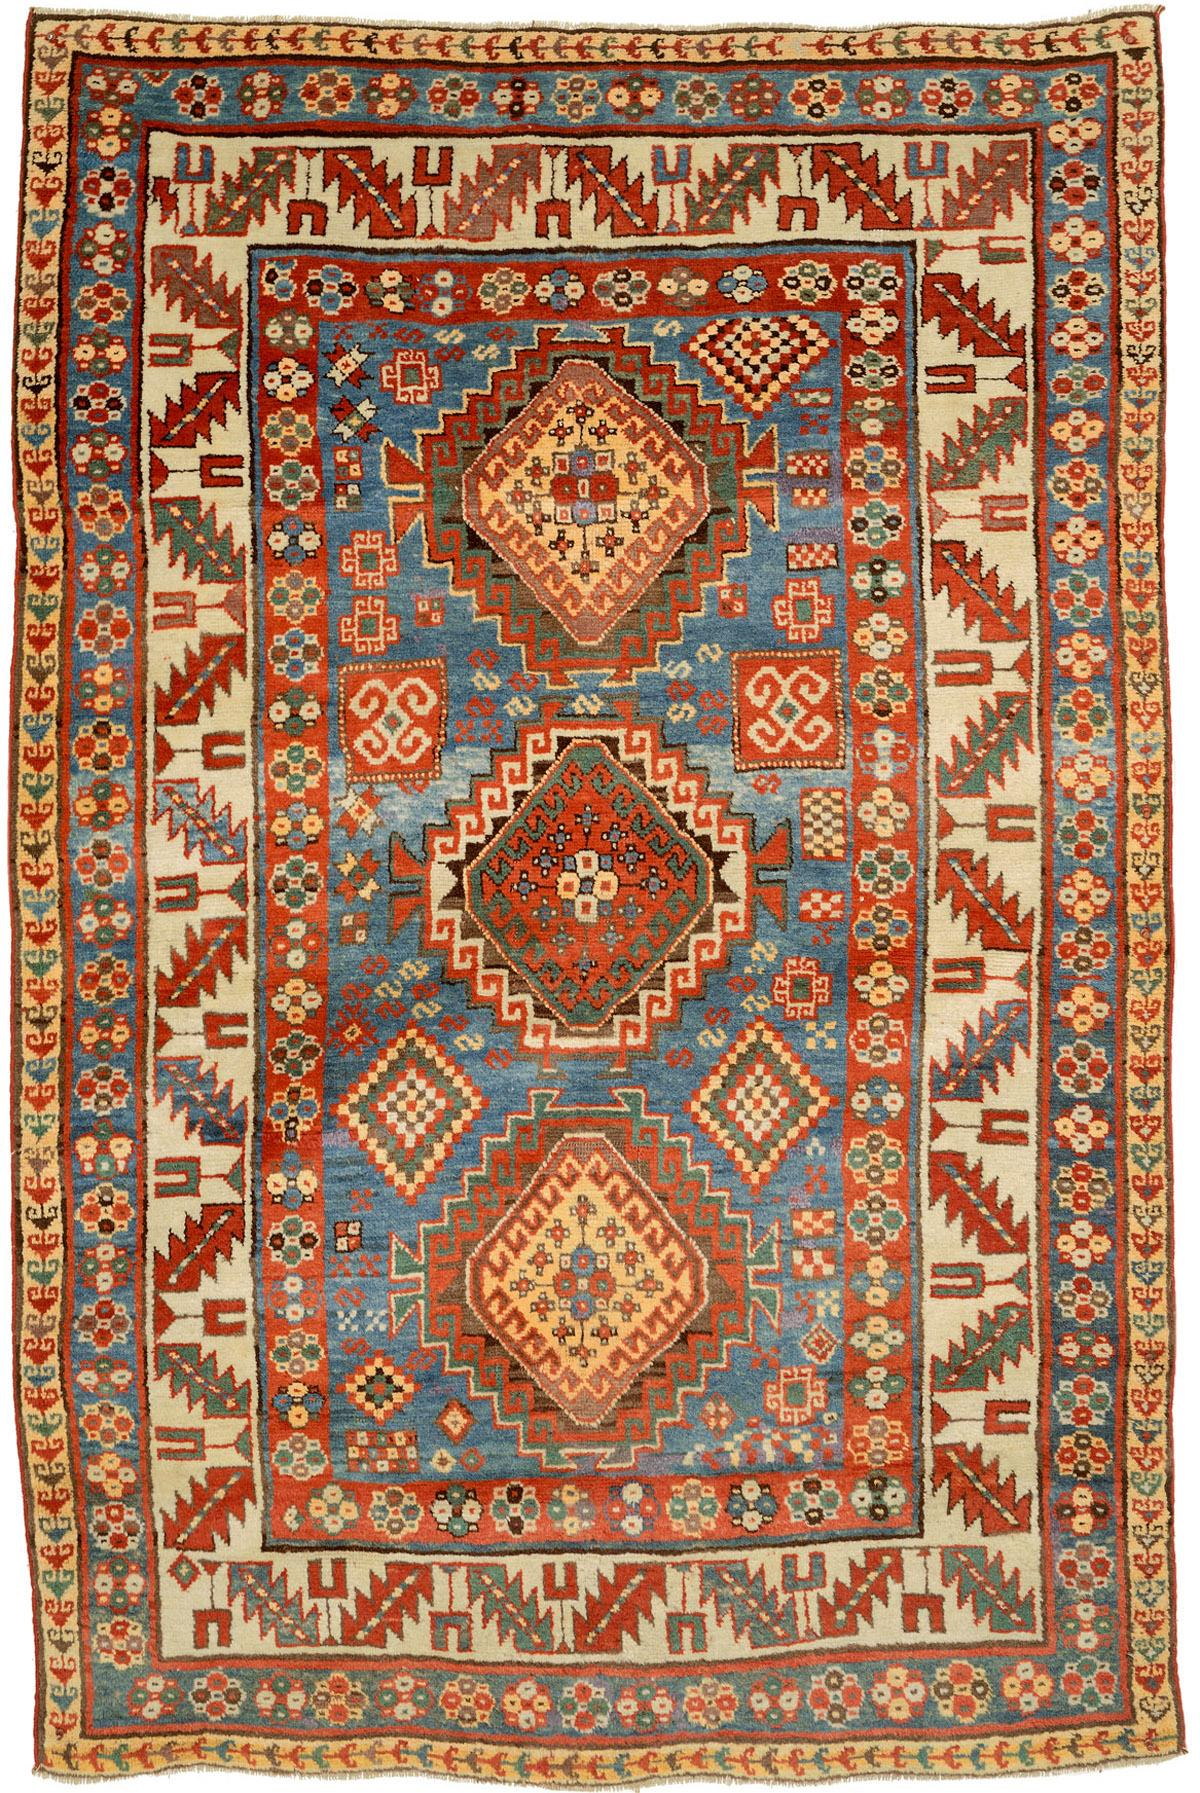 Buy Handmade Persian Rugs In Dubai Abu Dhabi